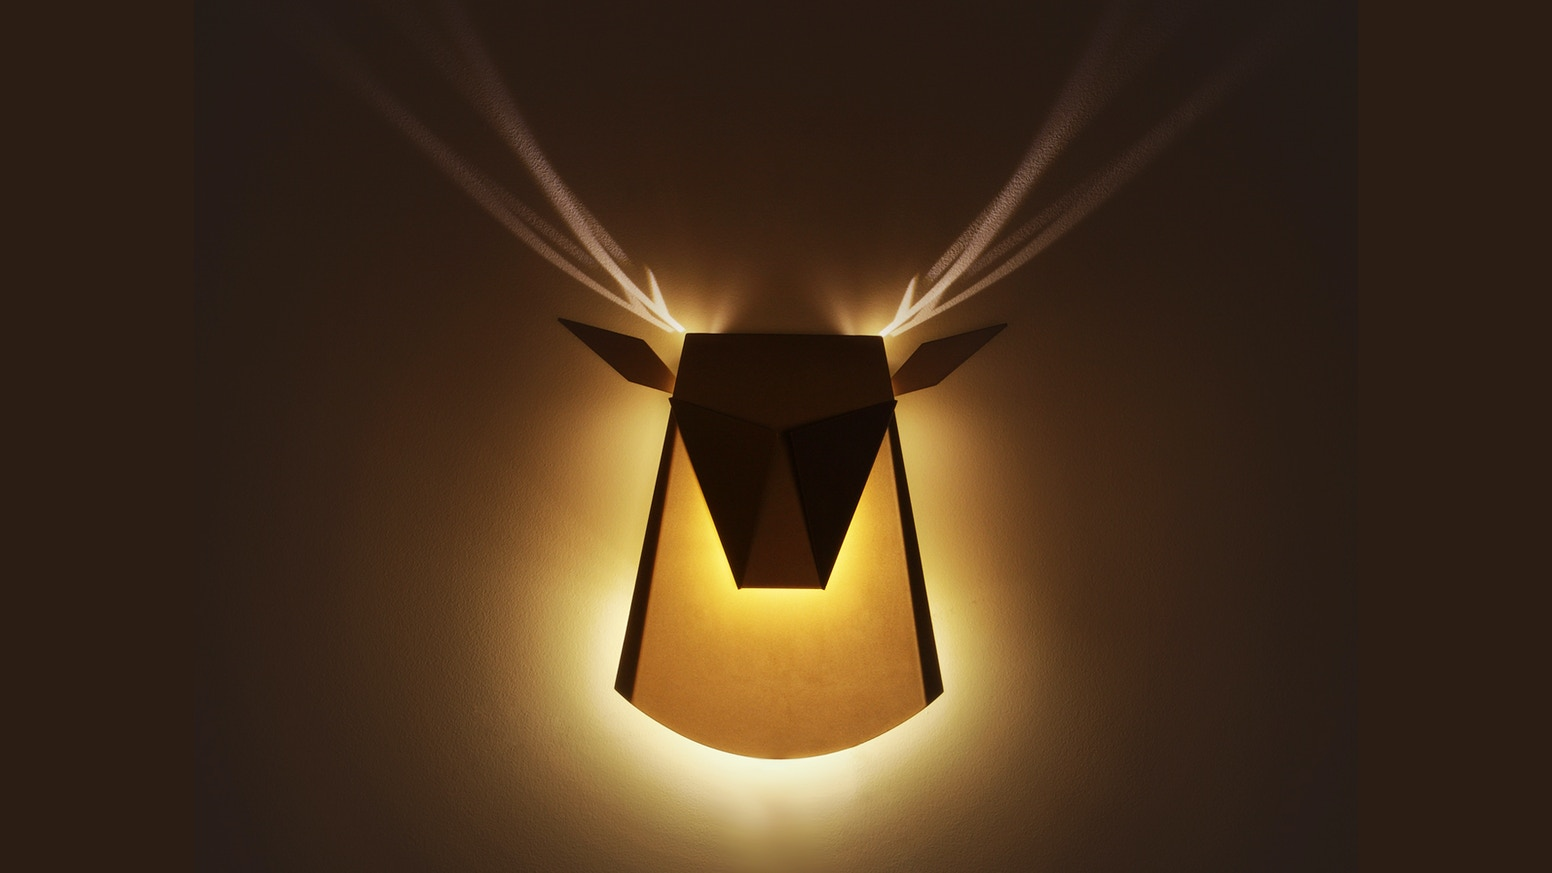 Led night light kickstarter - An Elegant Aluminum Wall Led Light Fixture The Light S Magical Effect Completes The Icon Adding Instant Ambiance To Any Space